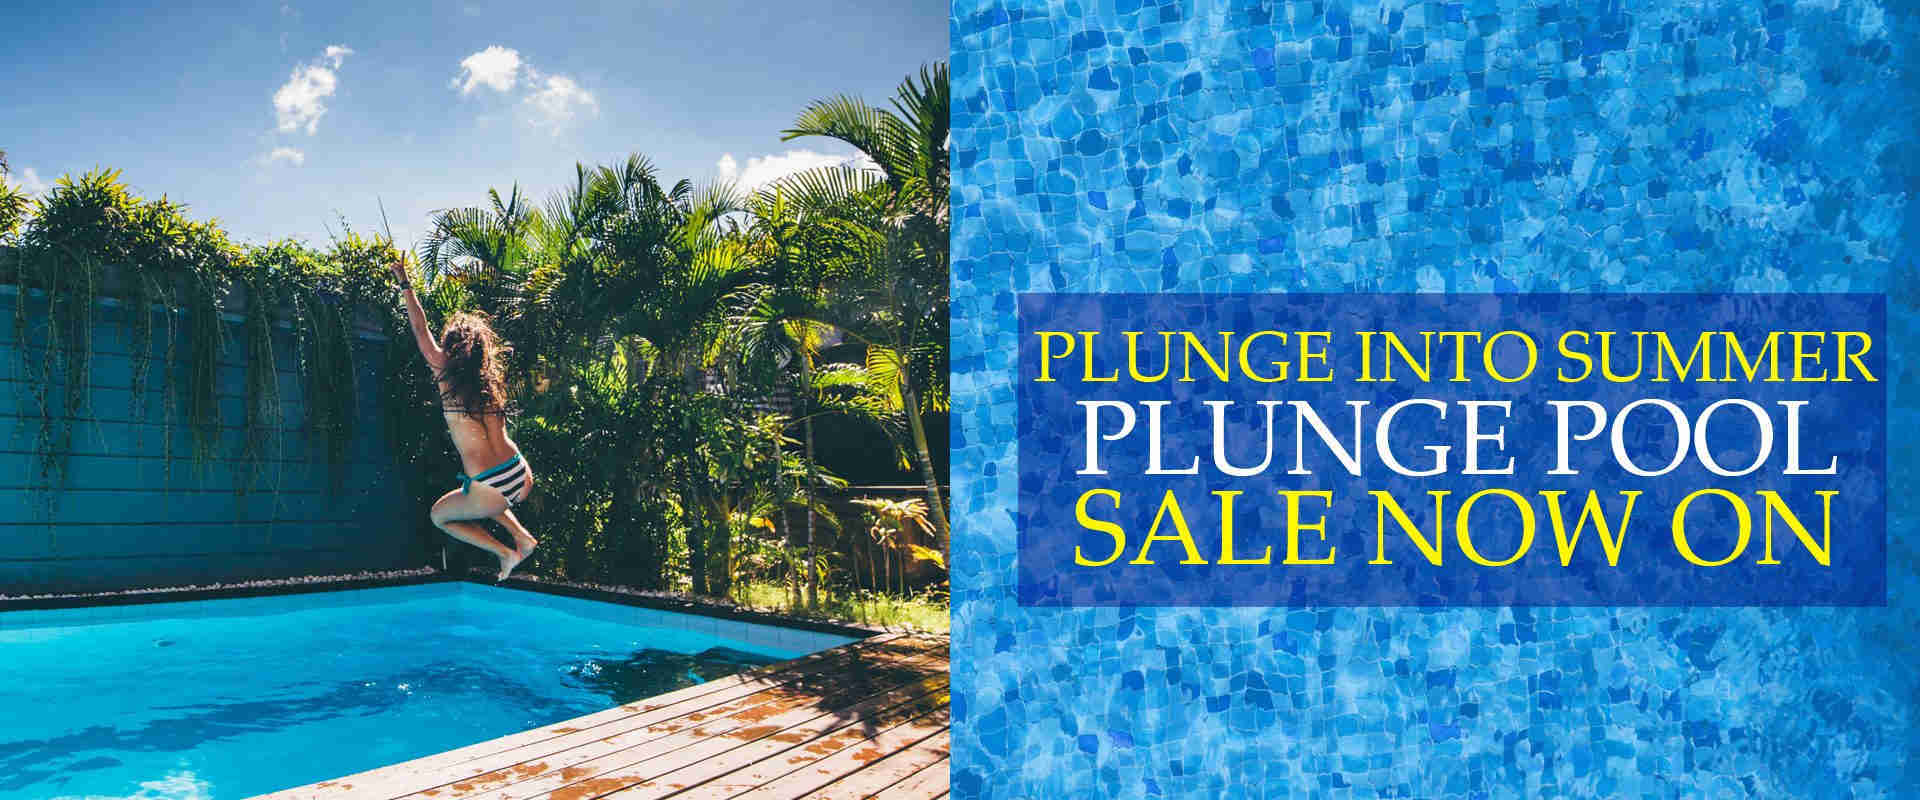 Plunge-Pools-Direct-Plunge-into-Summer-Sale